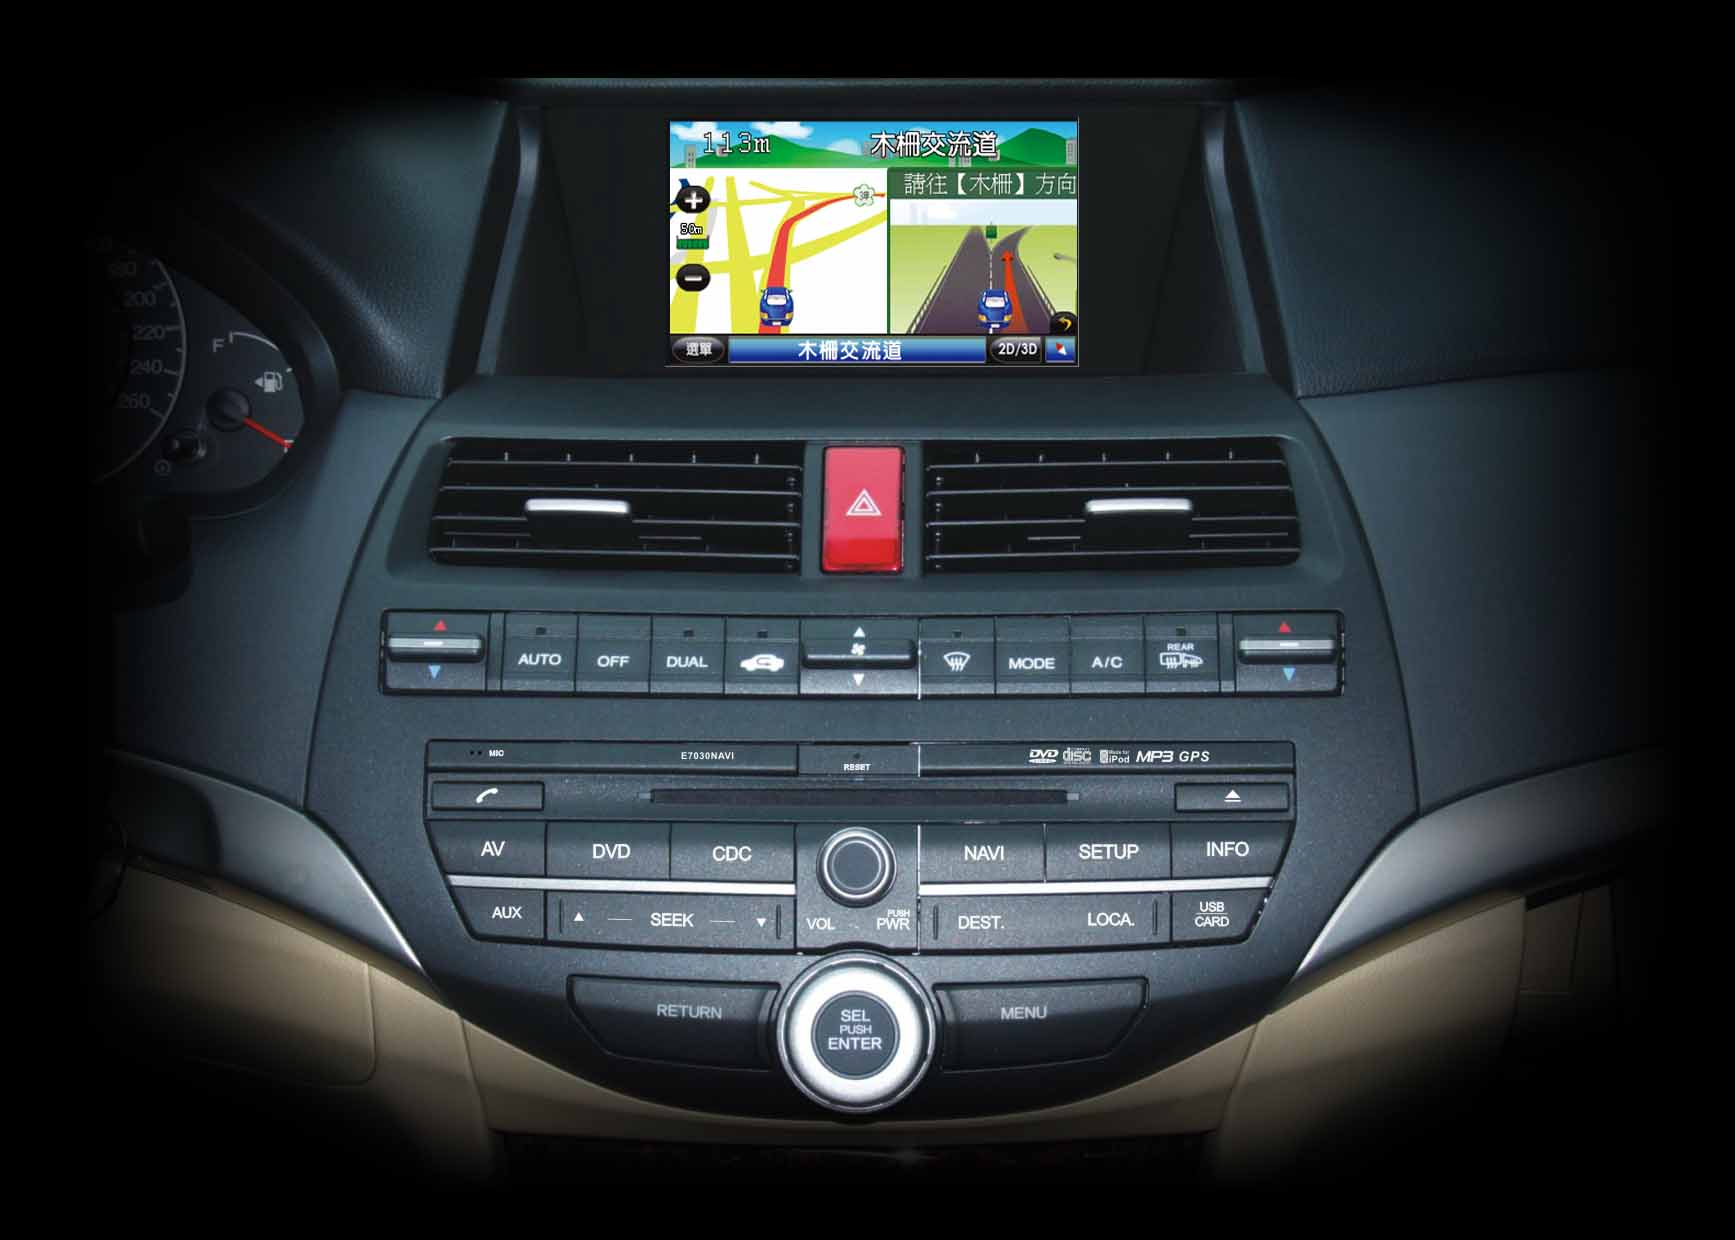 Car Audio With Navigation Systems : Car audio video entertainment navigation system for honda